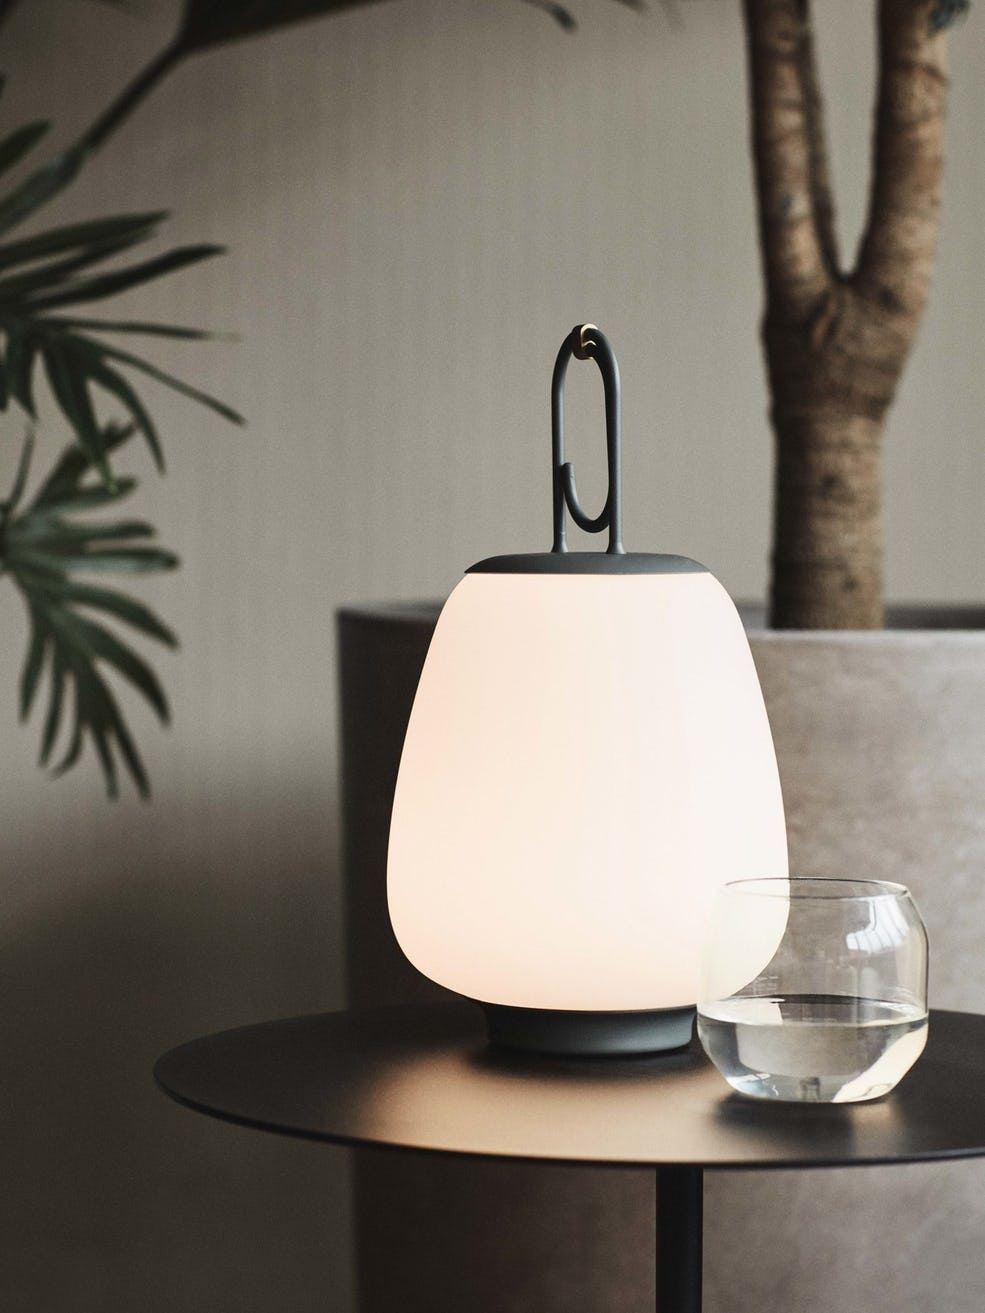 April 2020 Giveaway In 2020 Portable Lamps Table Lamp Design Lamp